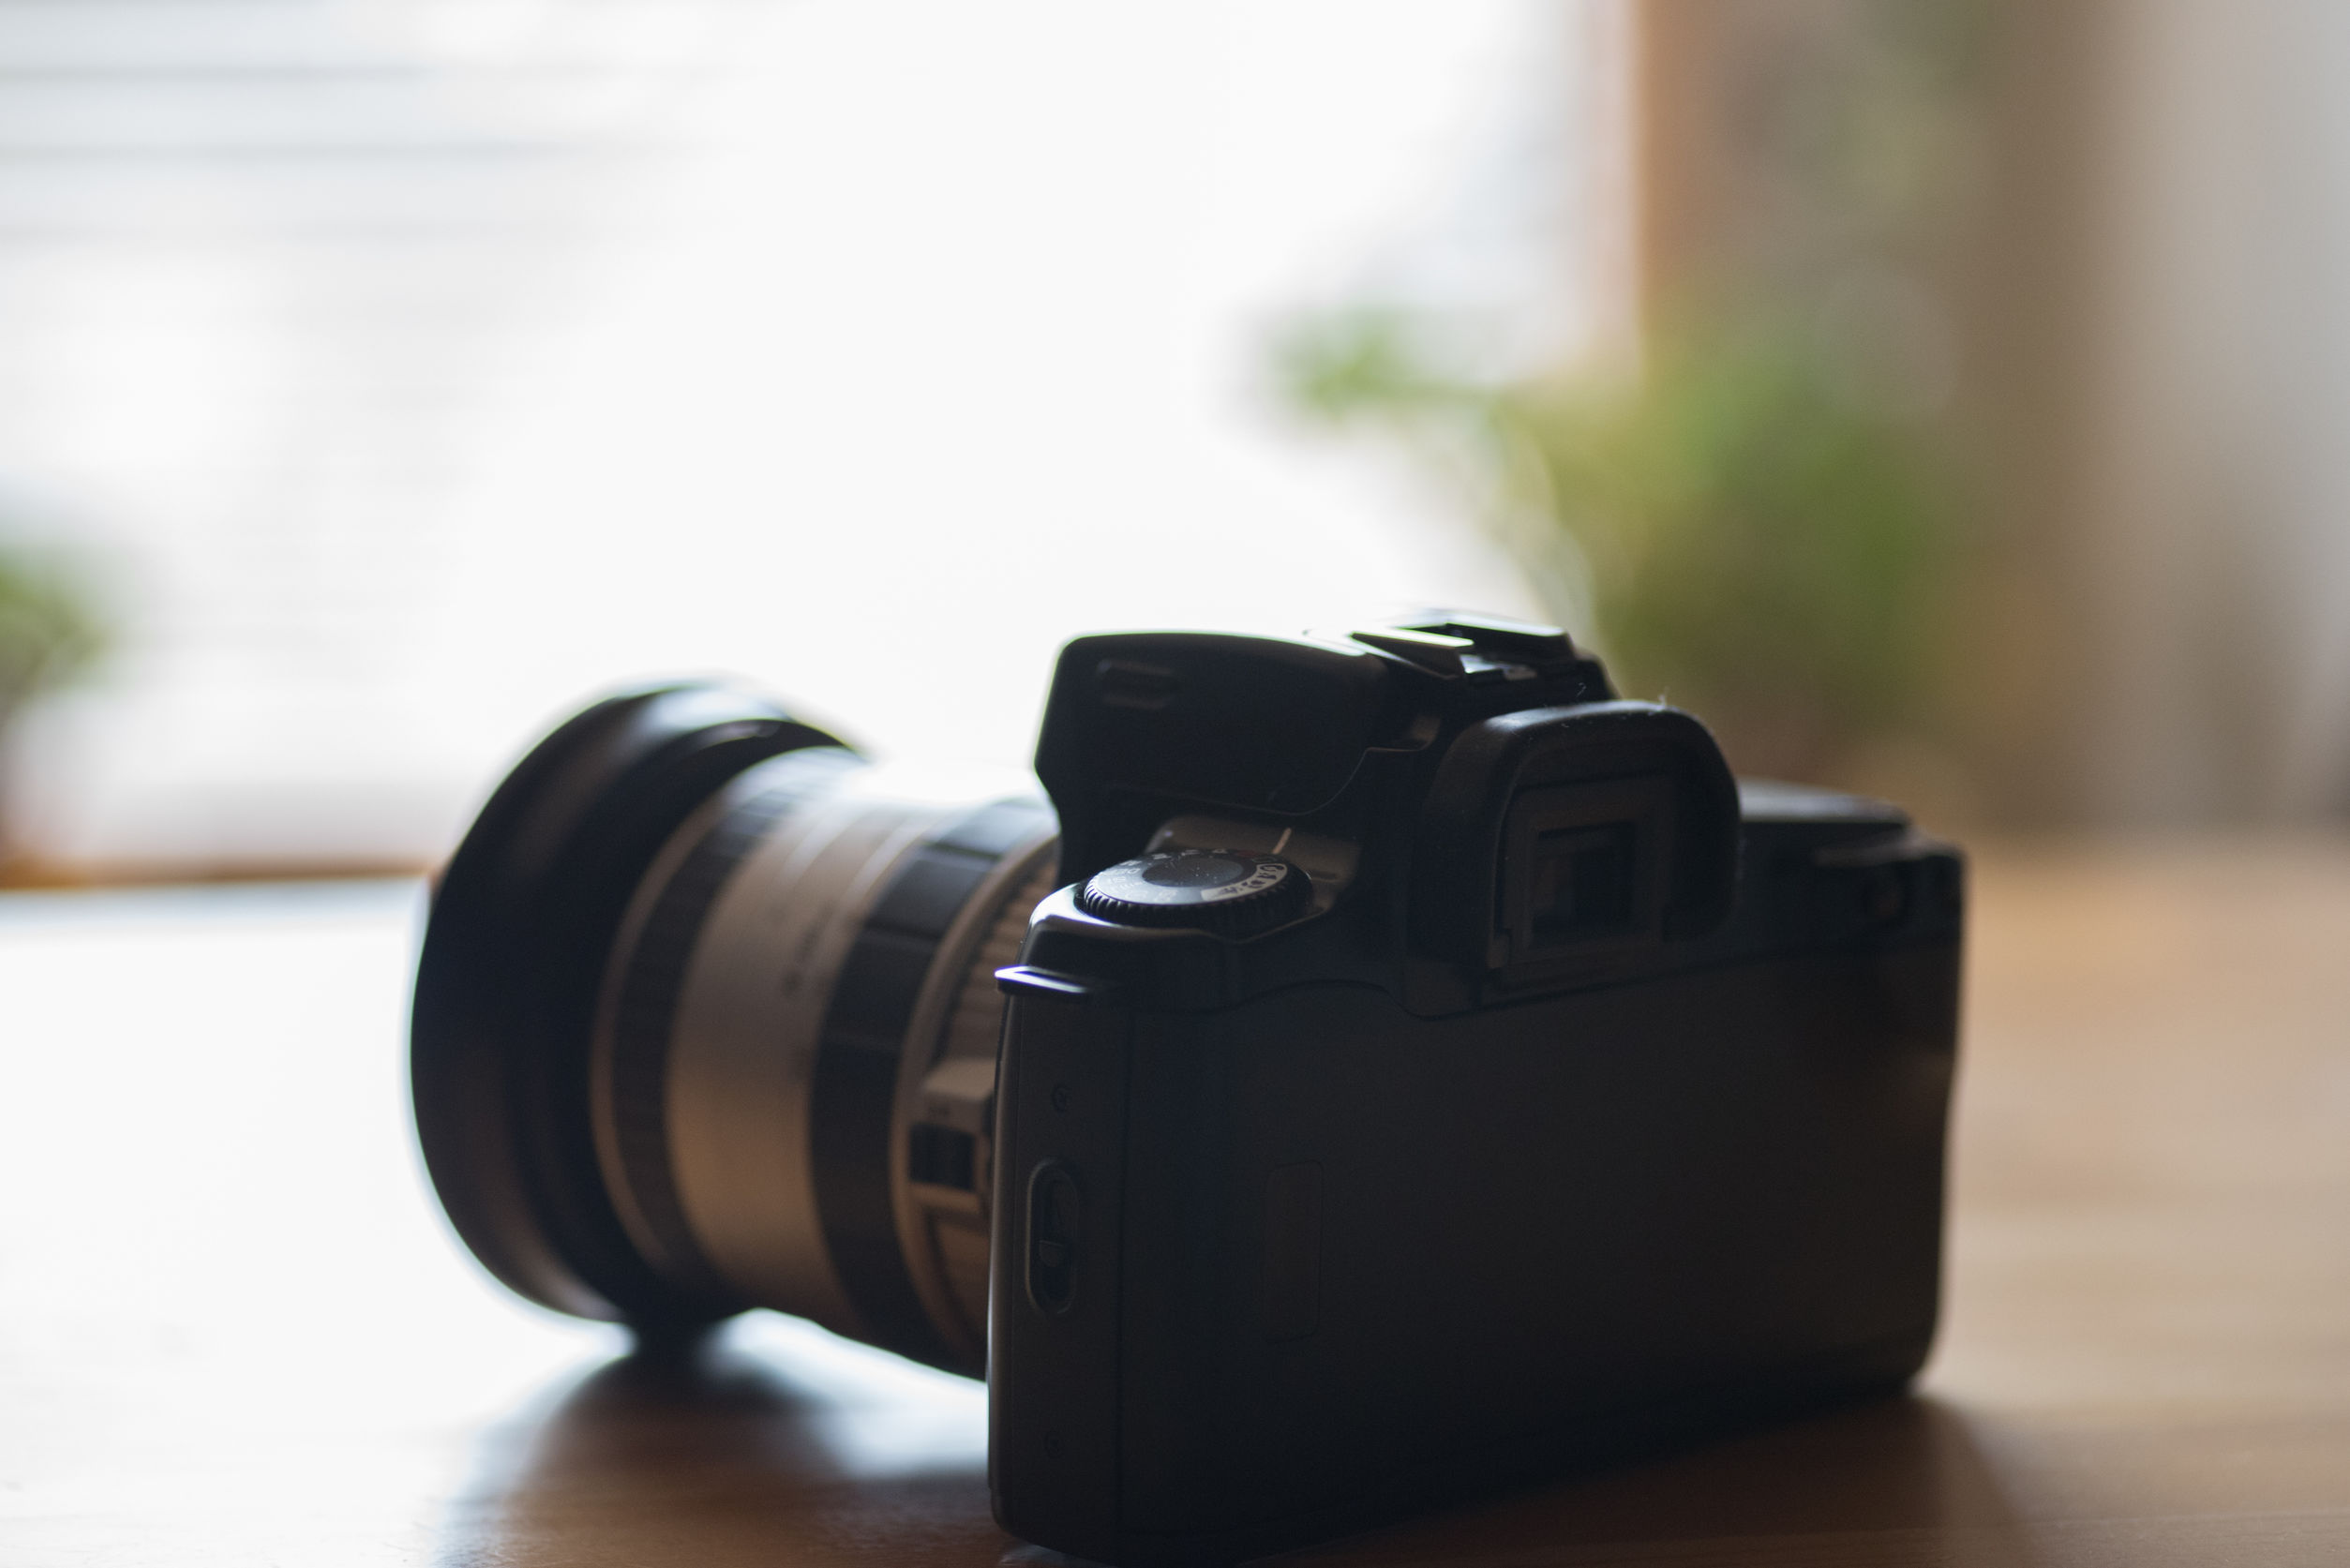 Best DSLR Camera 2021: The ultimate guide